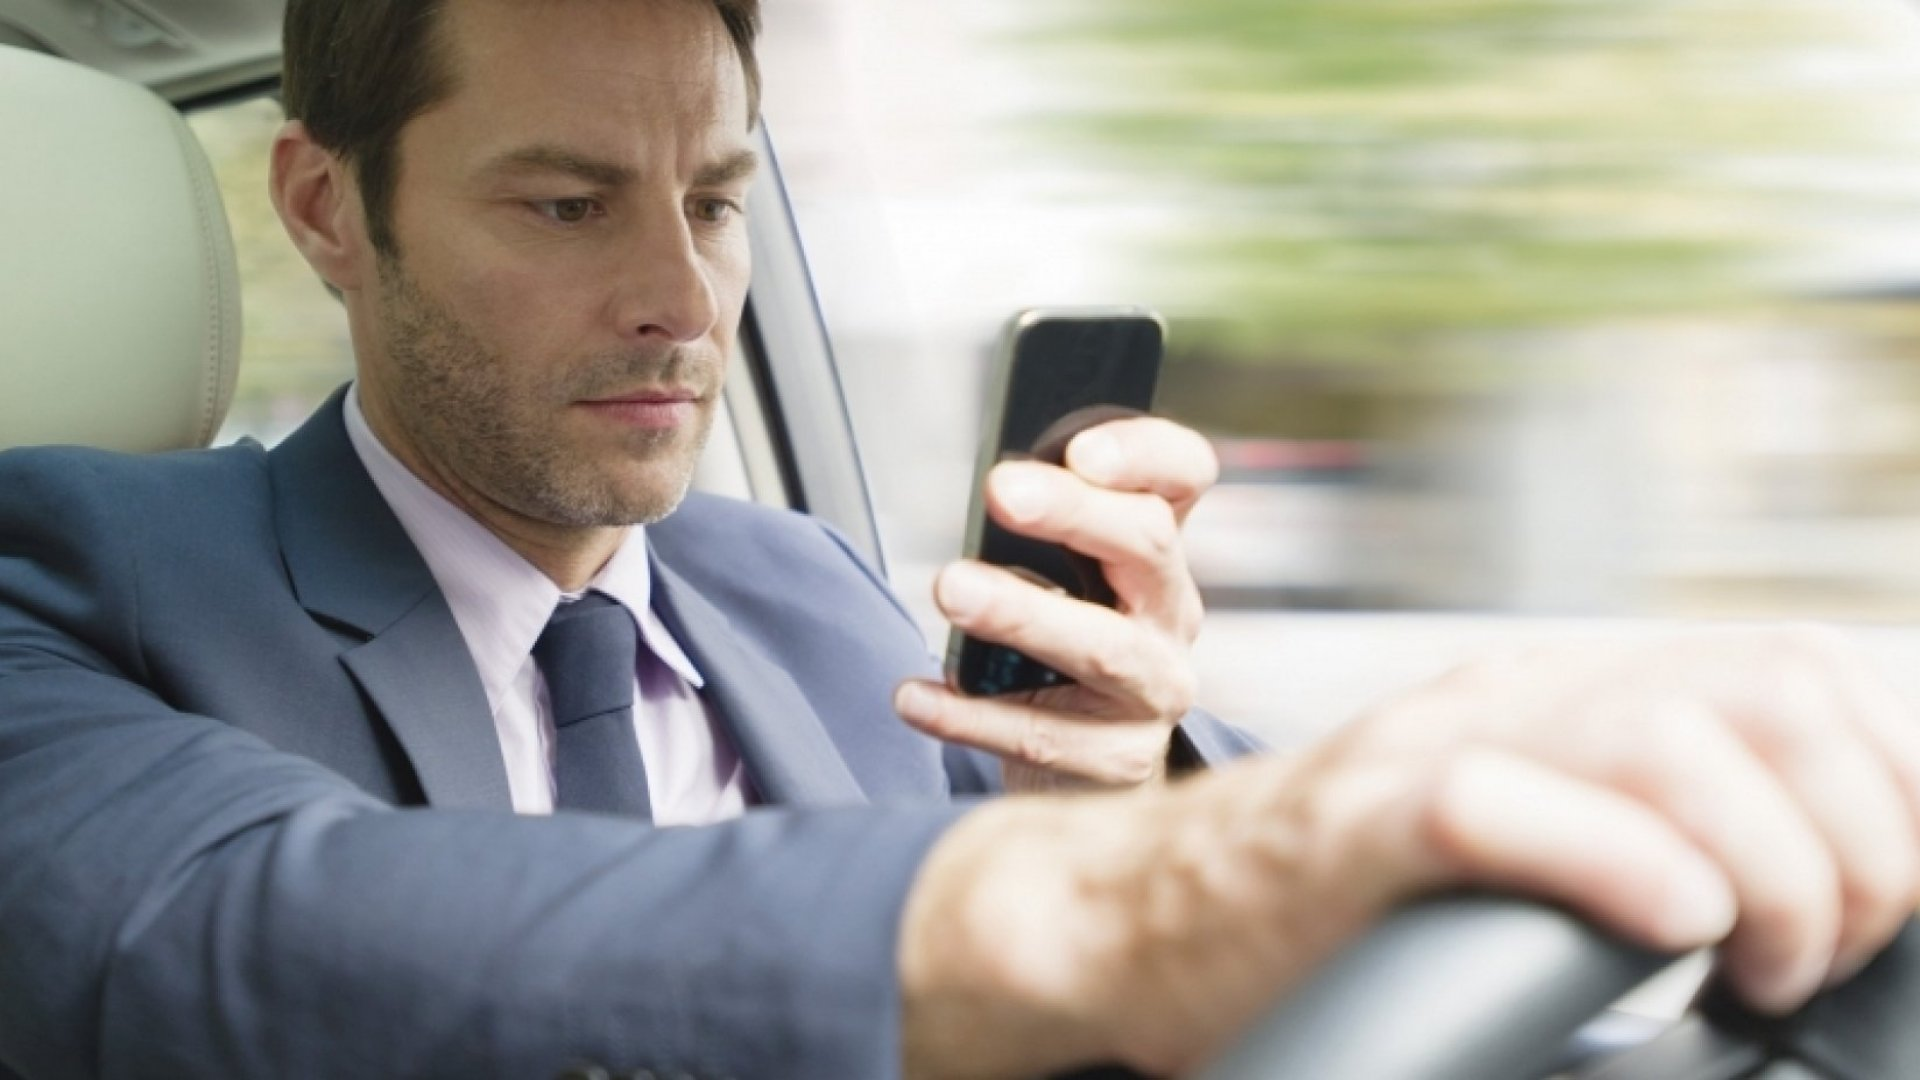 Texting While Driving Should Land You in Jail